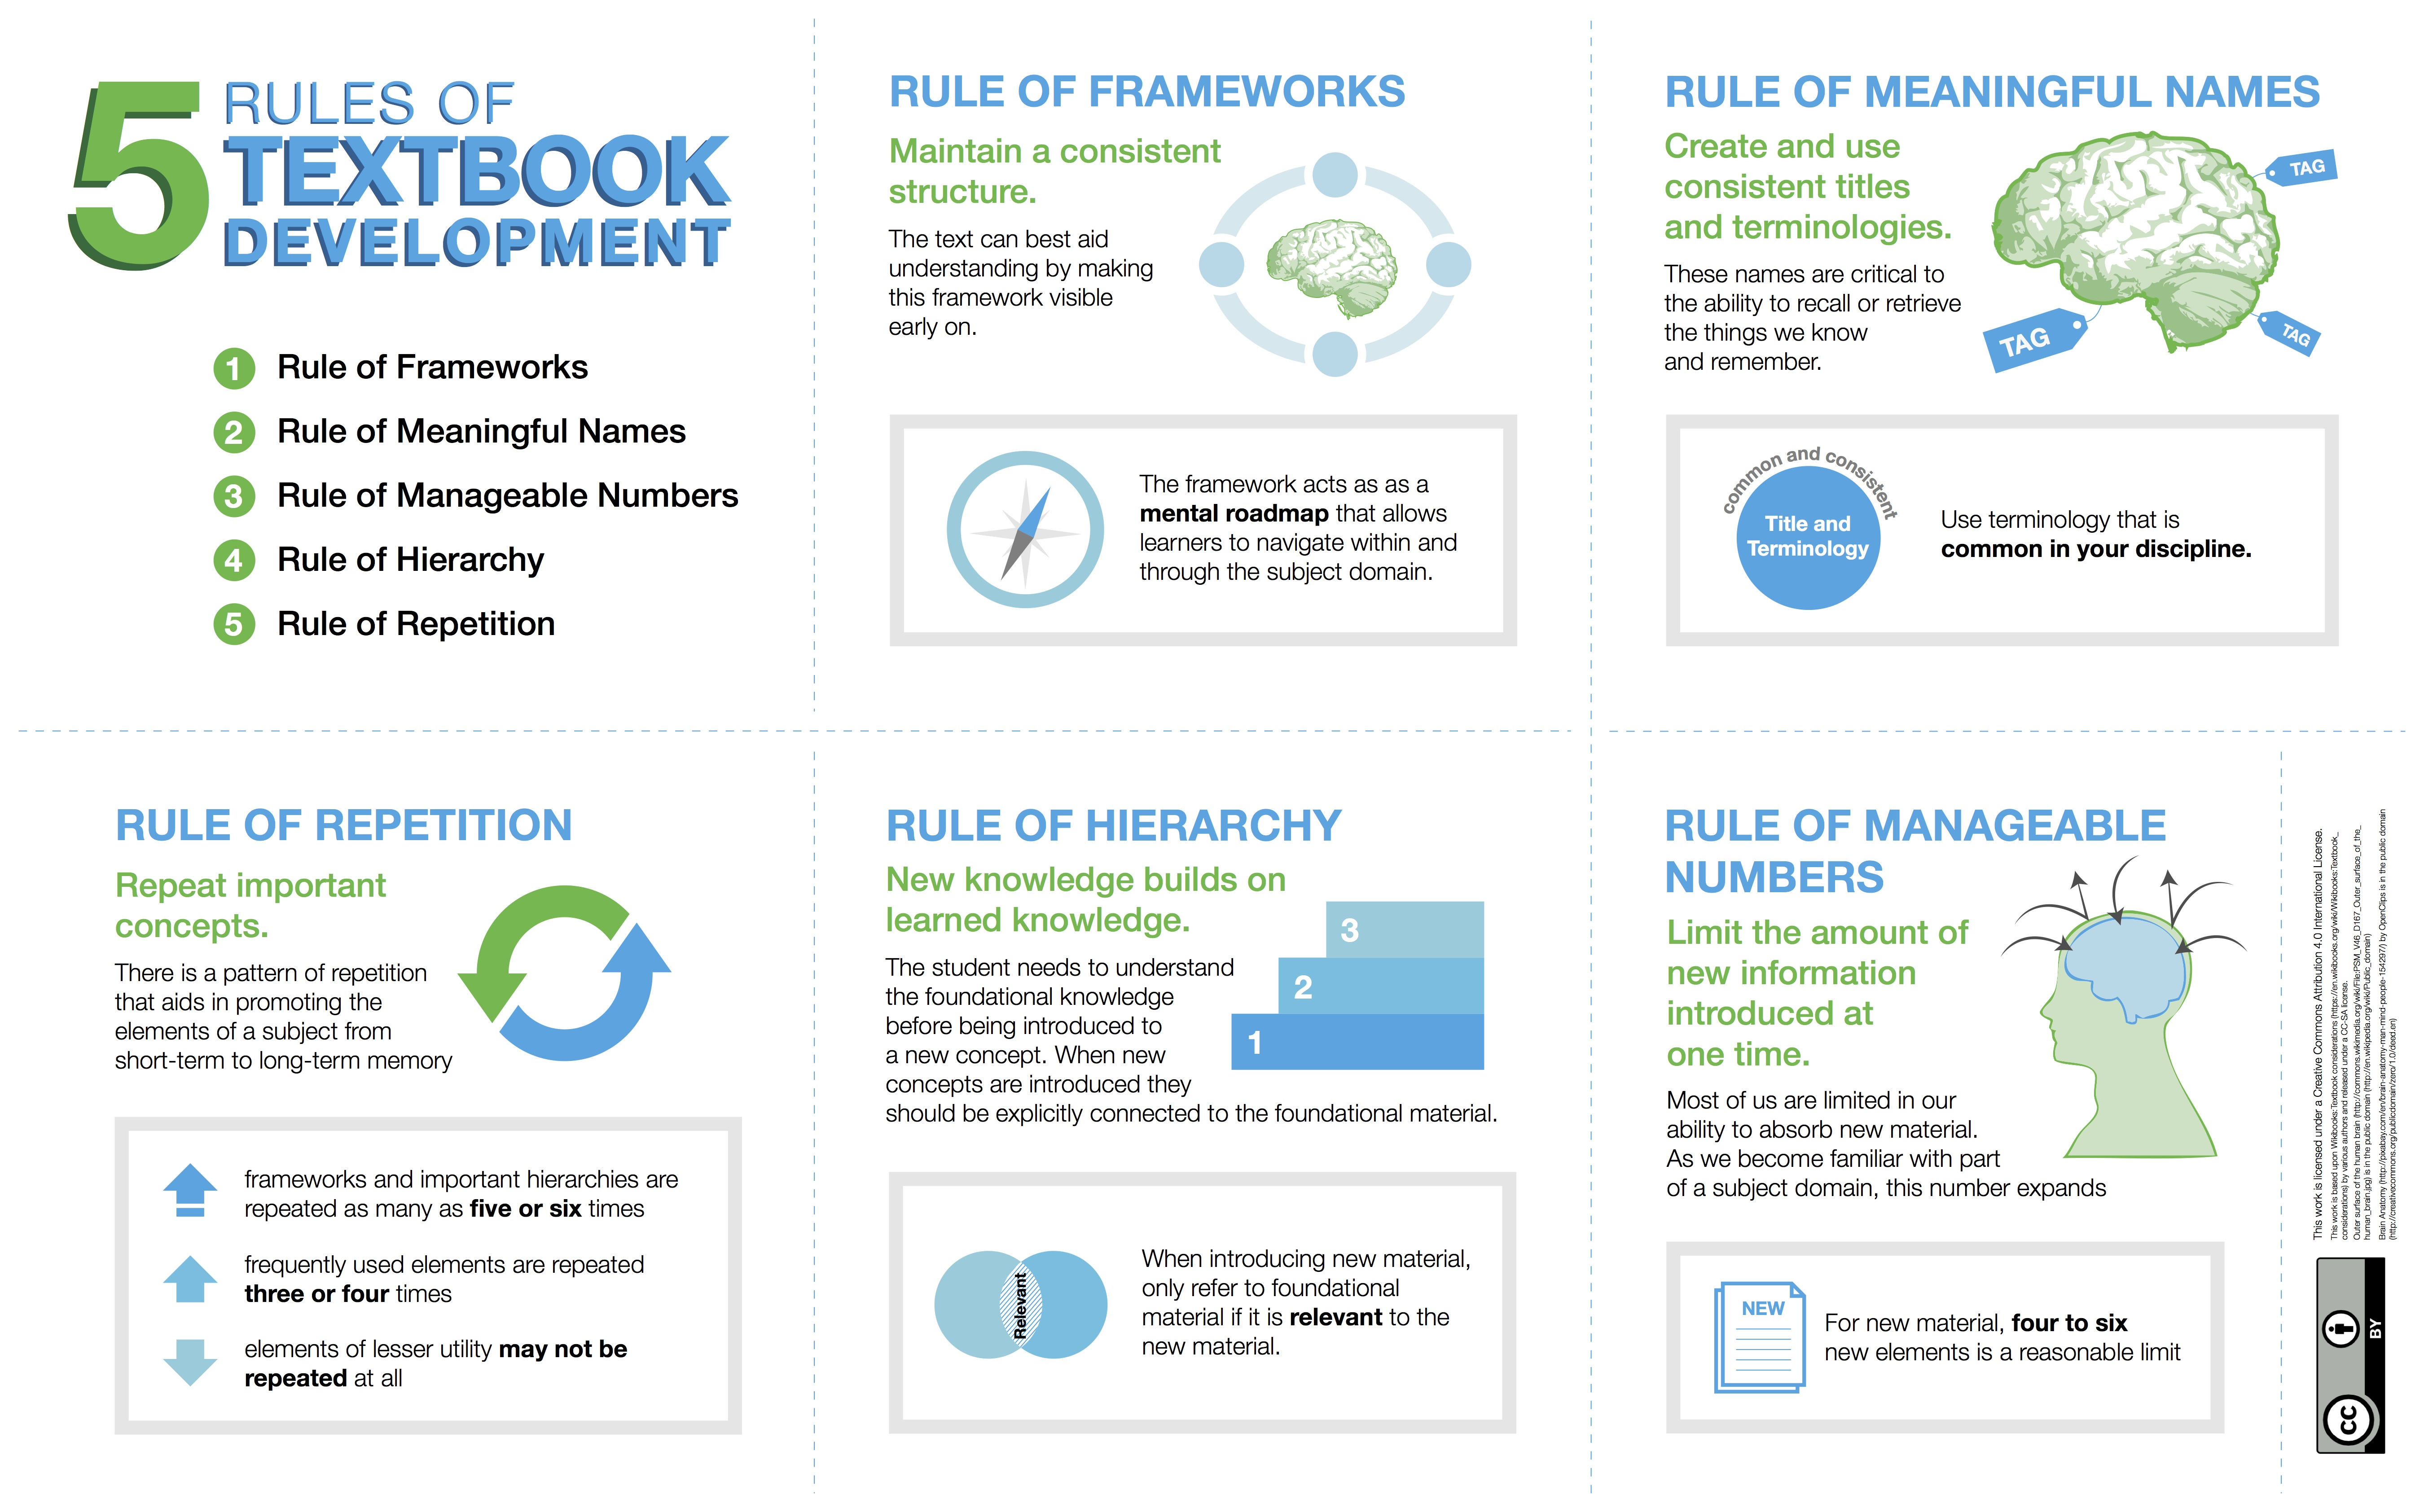 Infographic with green and blue text outlining the 5 rules of textbook development: repetition, frameworks, meaningful names, manageable numbers, and hierarchies.